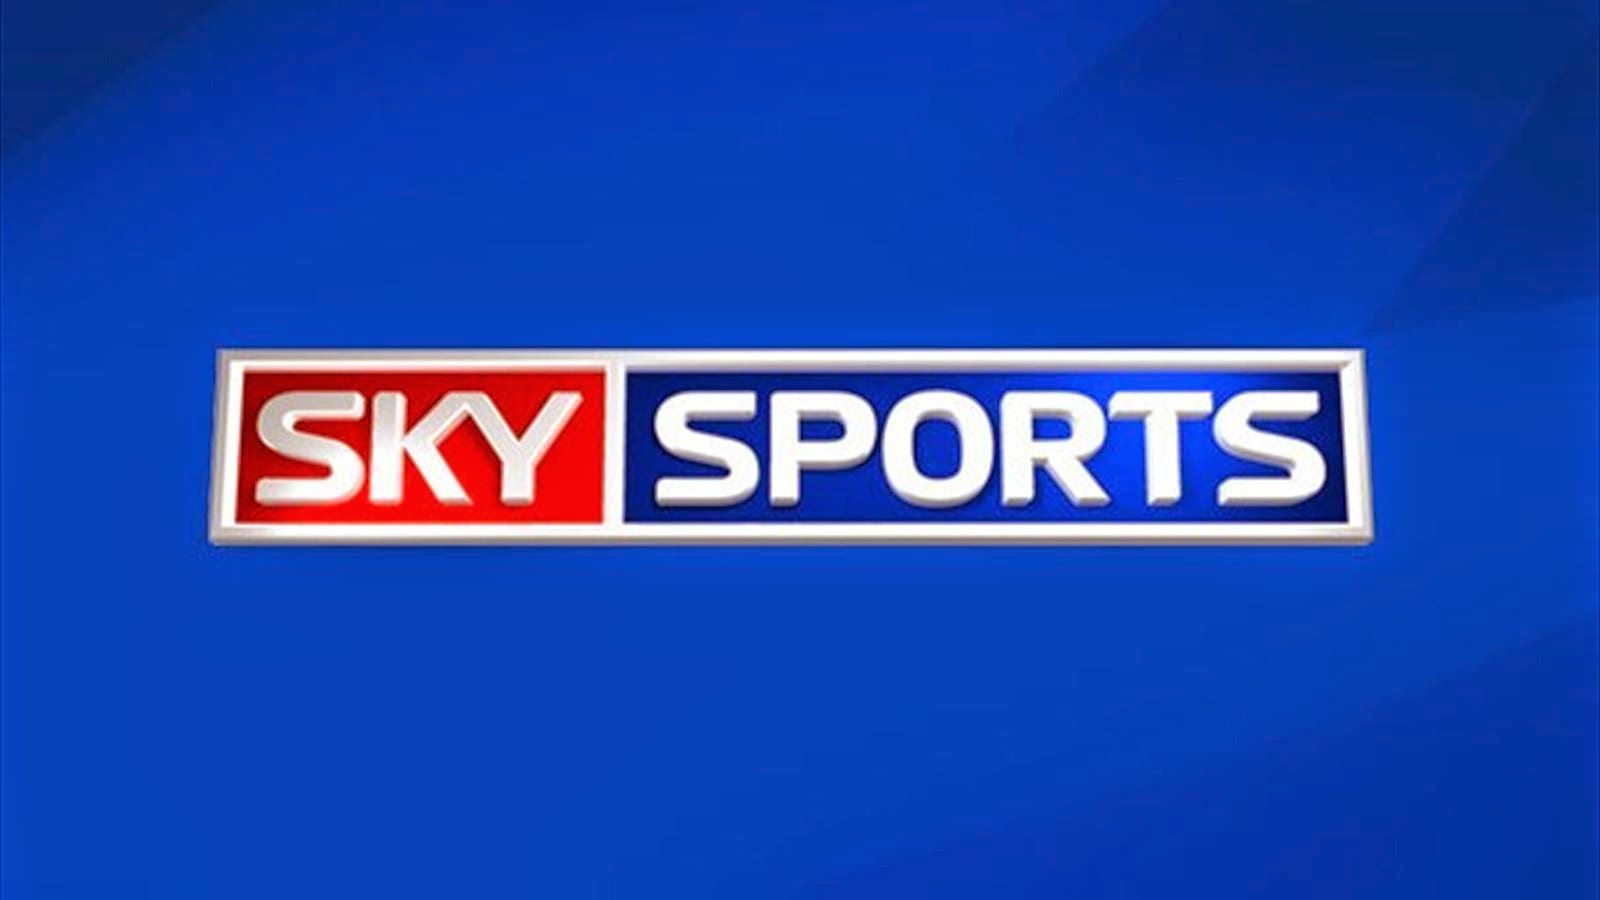 Sky sports online live tv watch free online free movies for Sky sports 2 hd live streaming online free